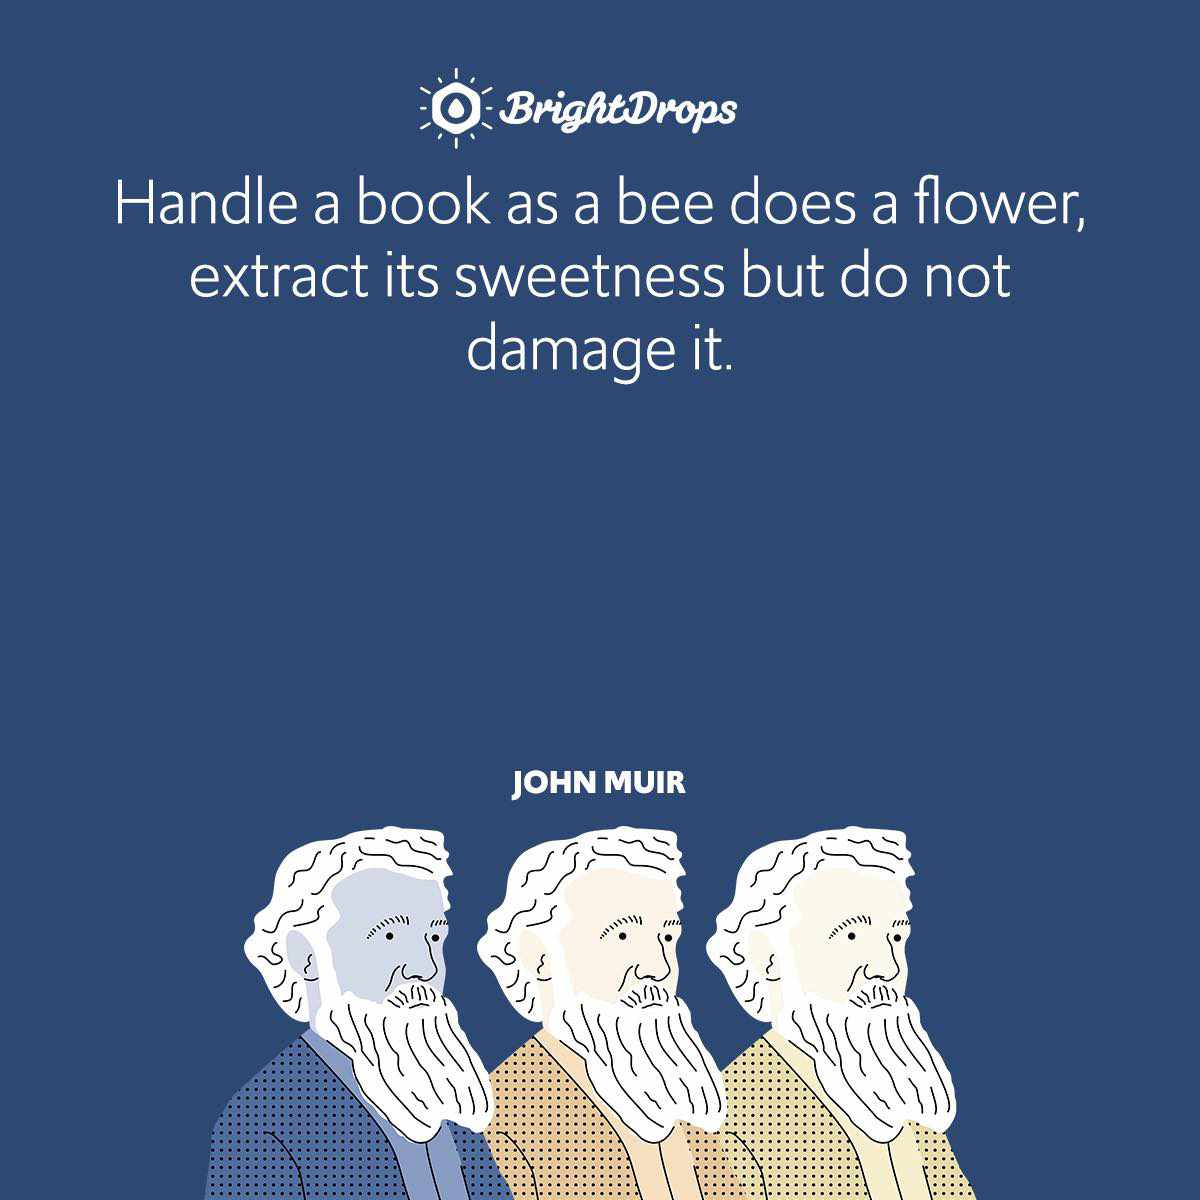 Handle a book as a bee does a flower, extract its sweetness but do not damage it.